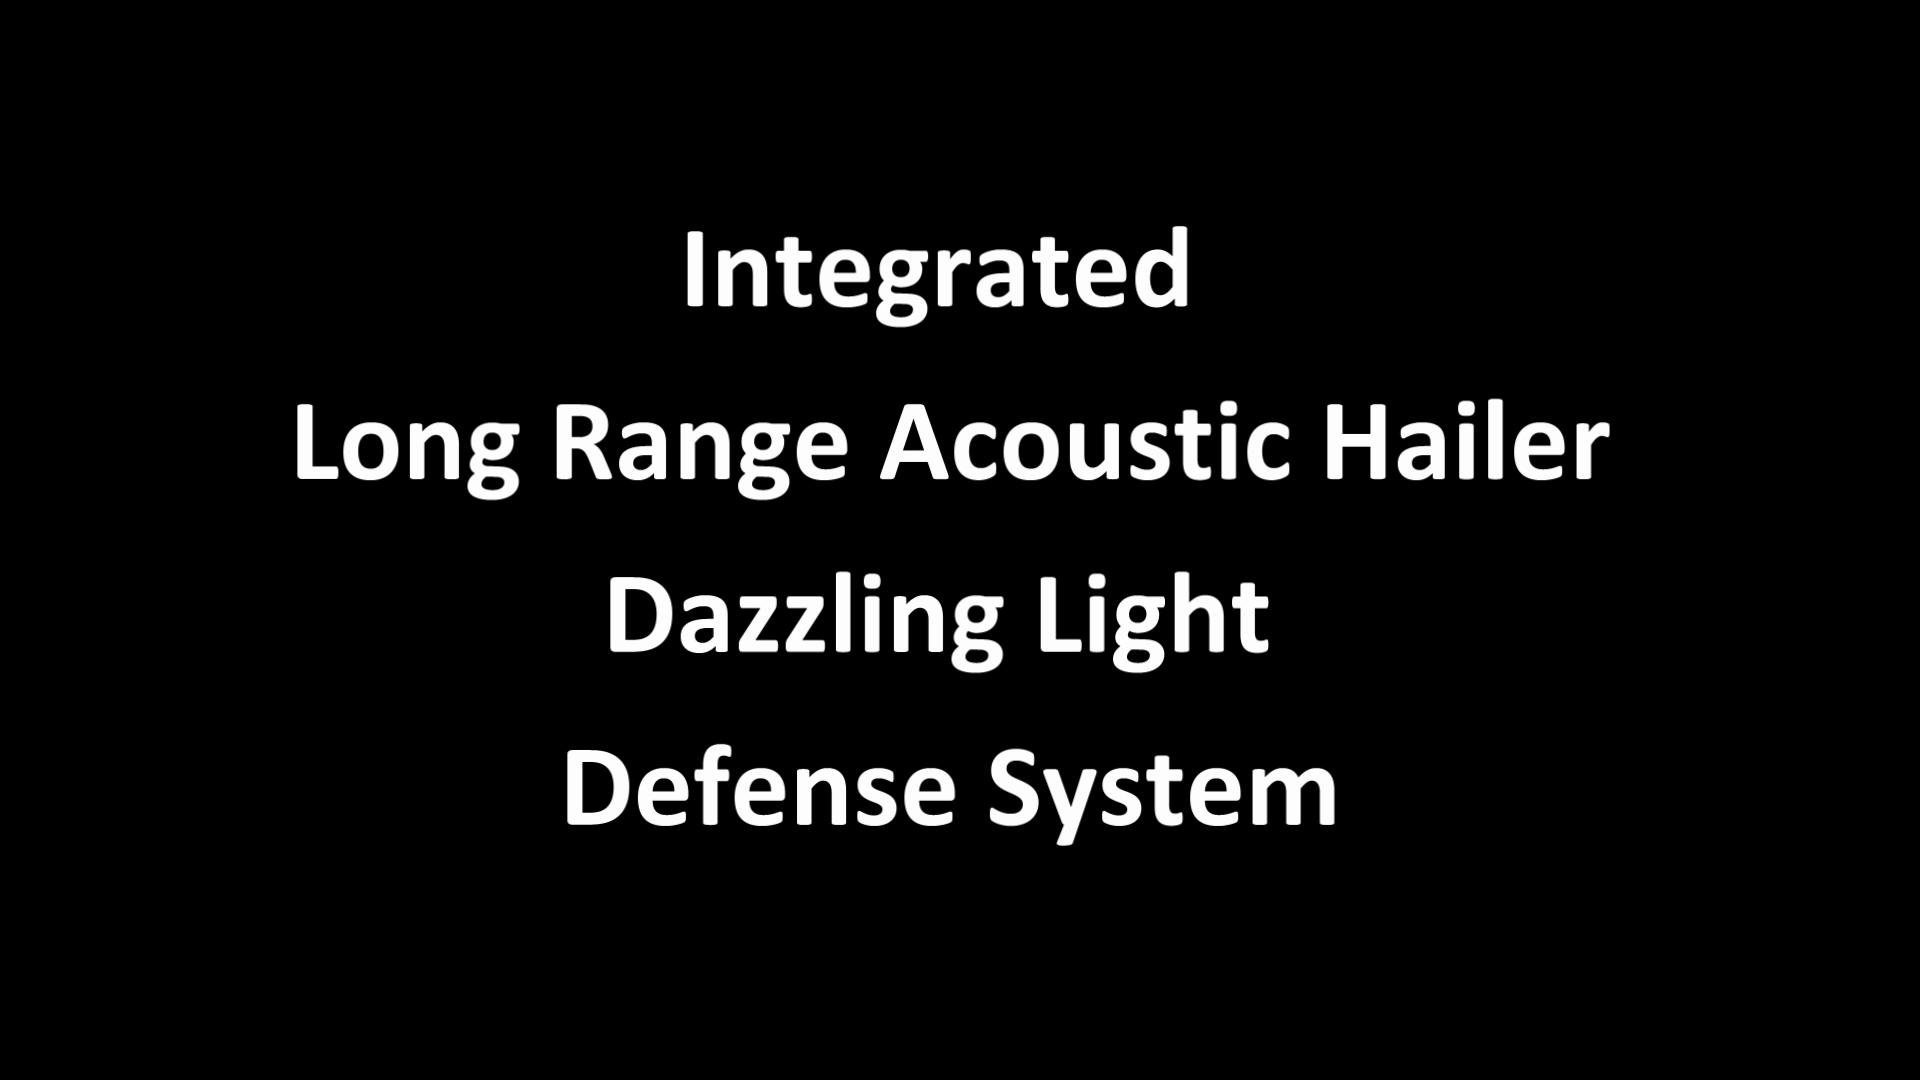 Integrated Long Range Acoustic Lighting Defense System (ALDS)